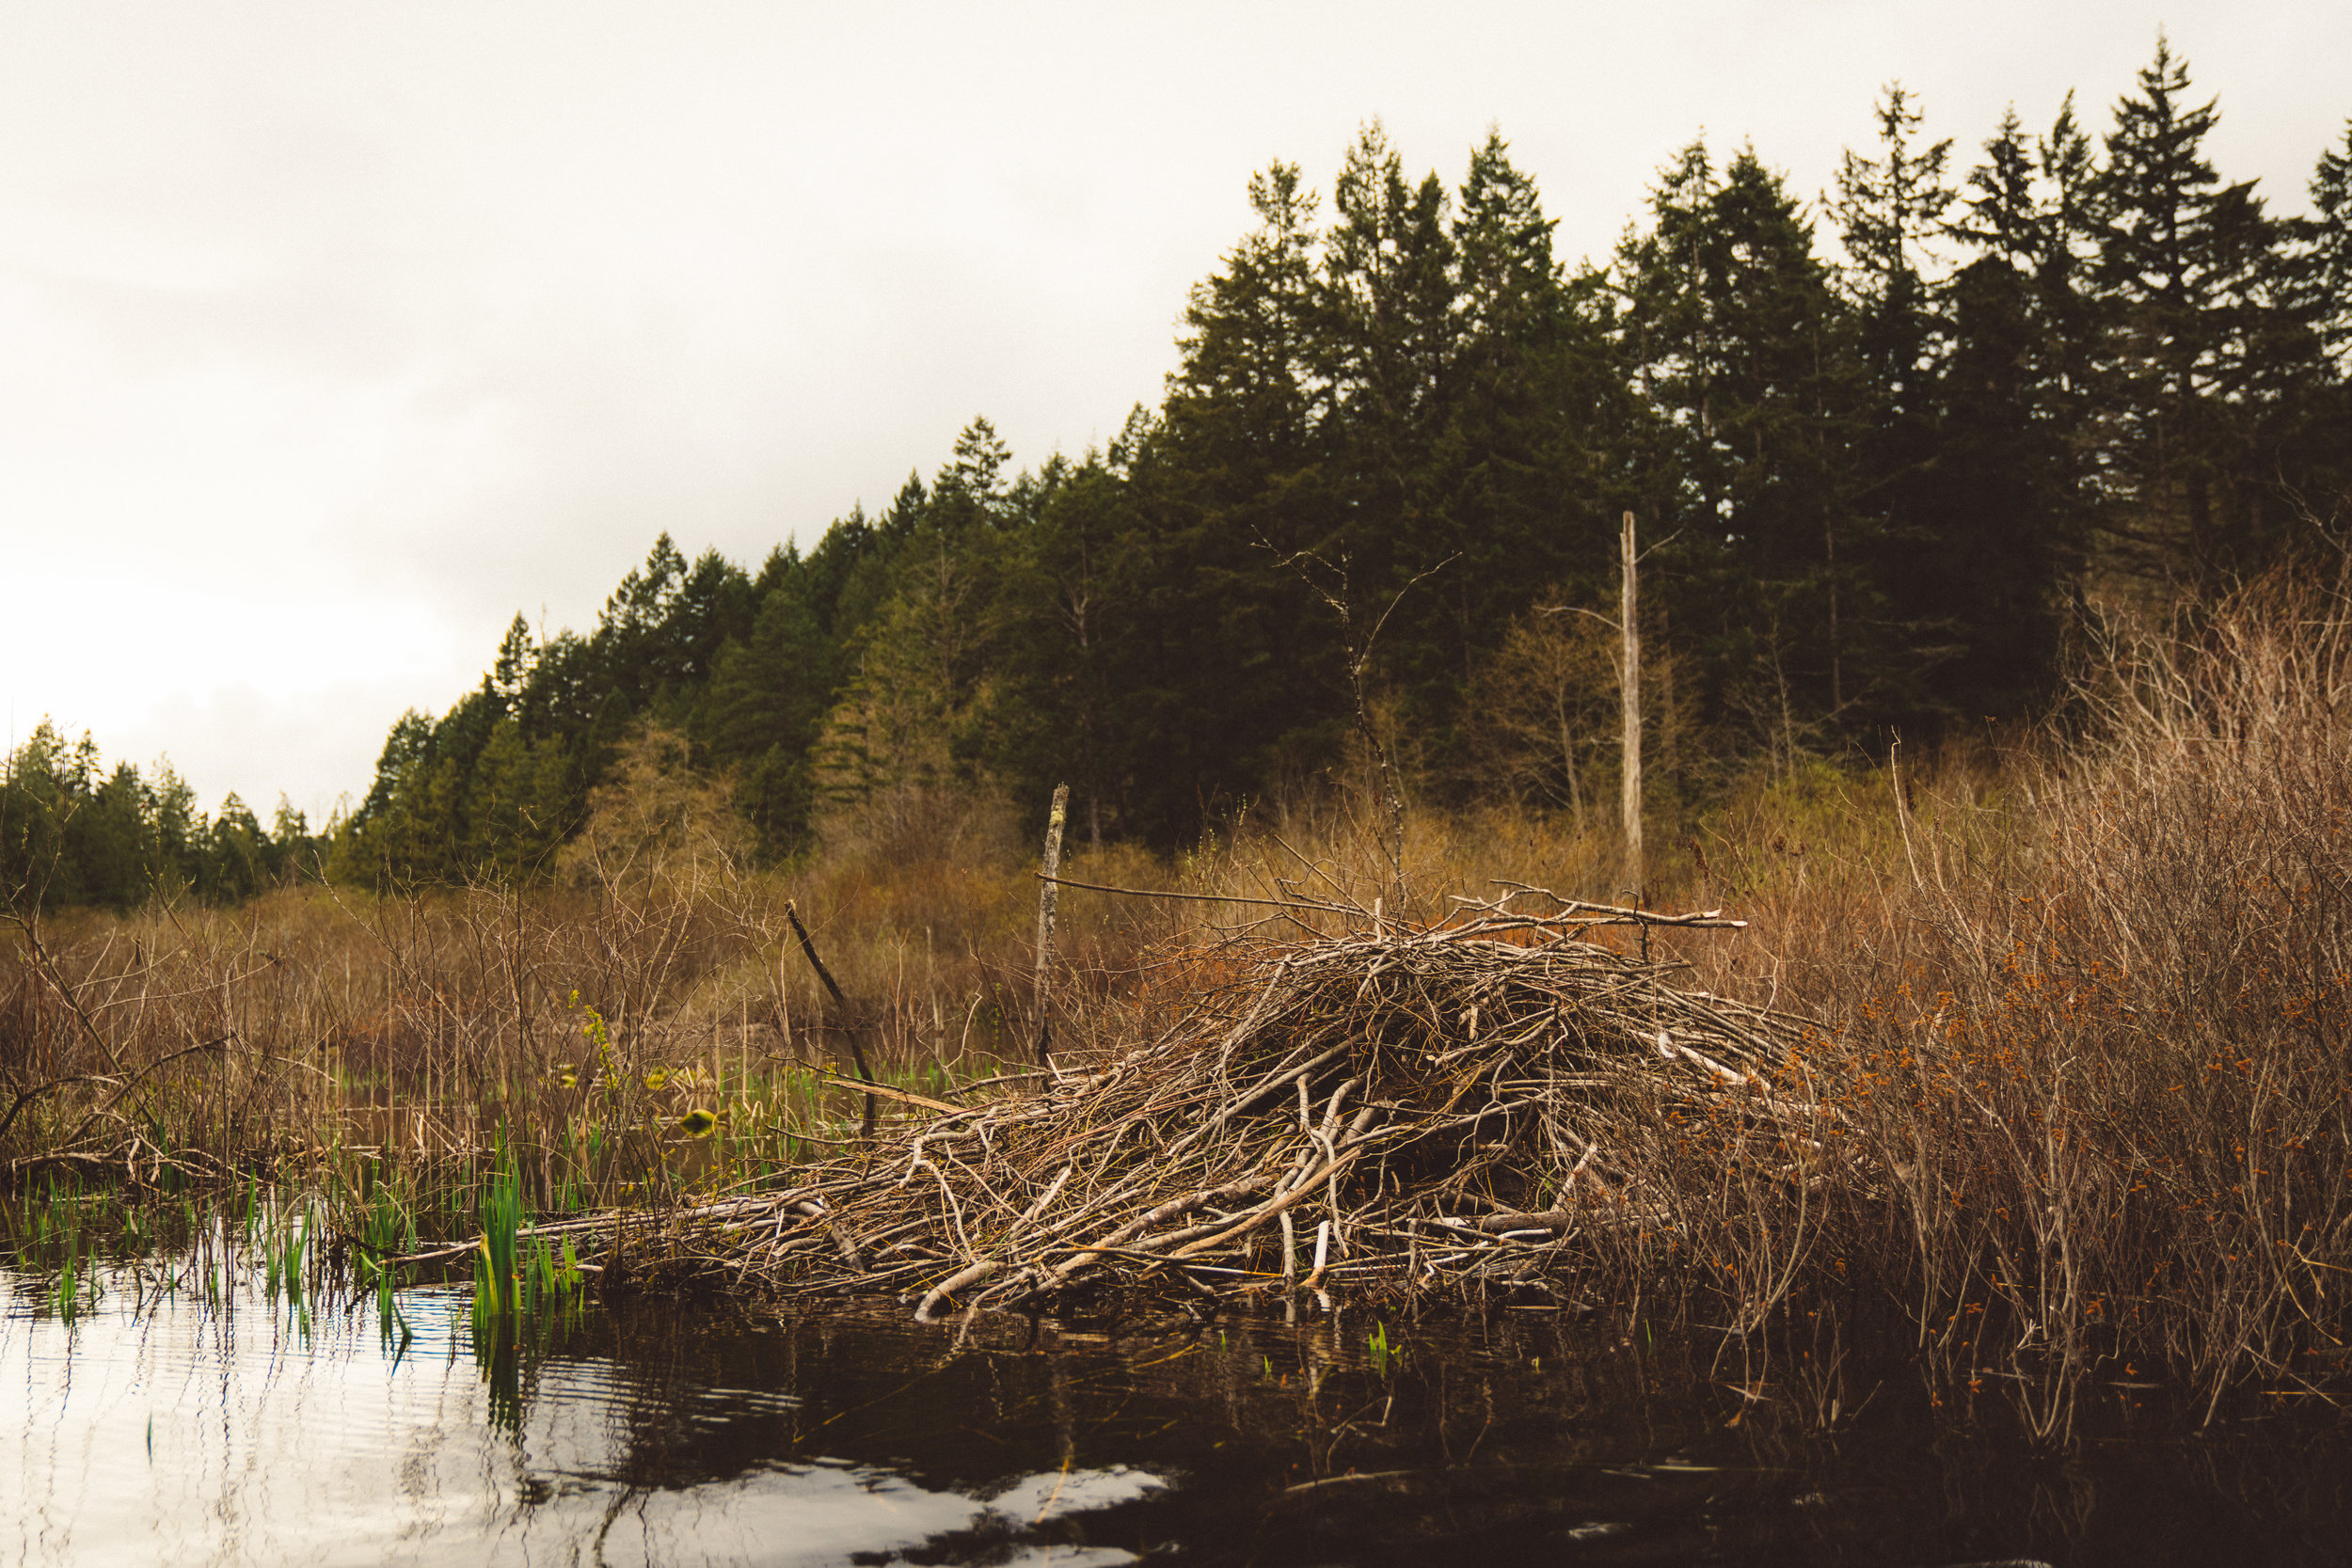 A beaver lodge in the swamp.